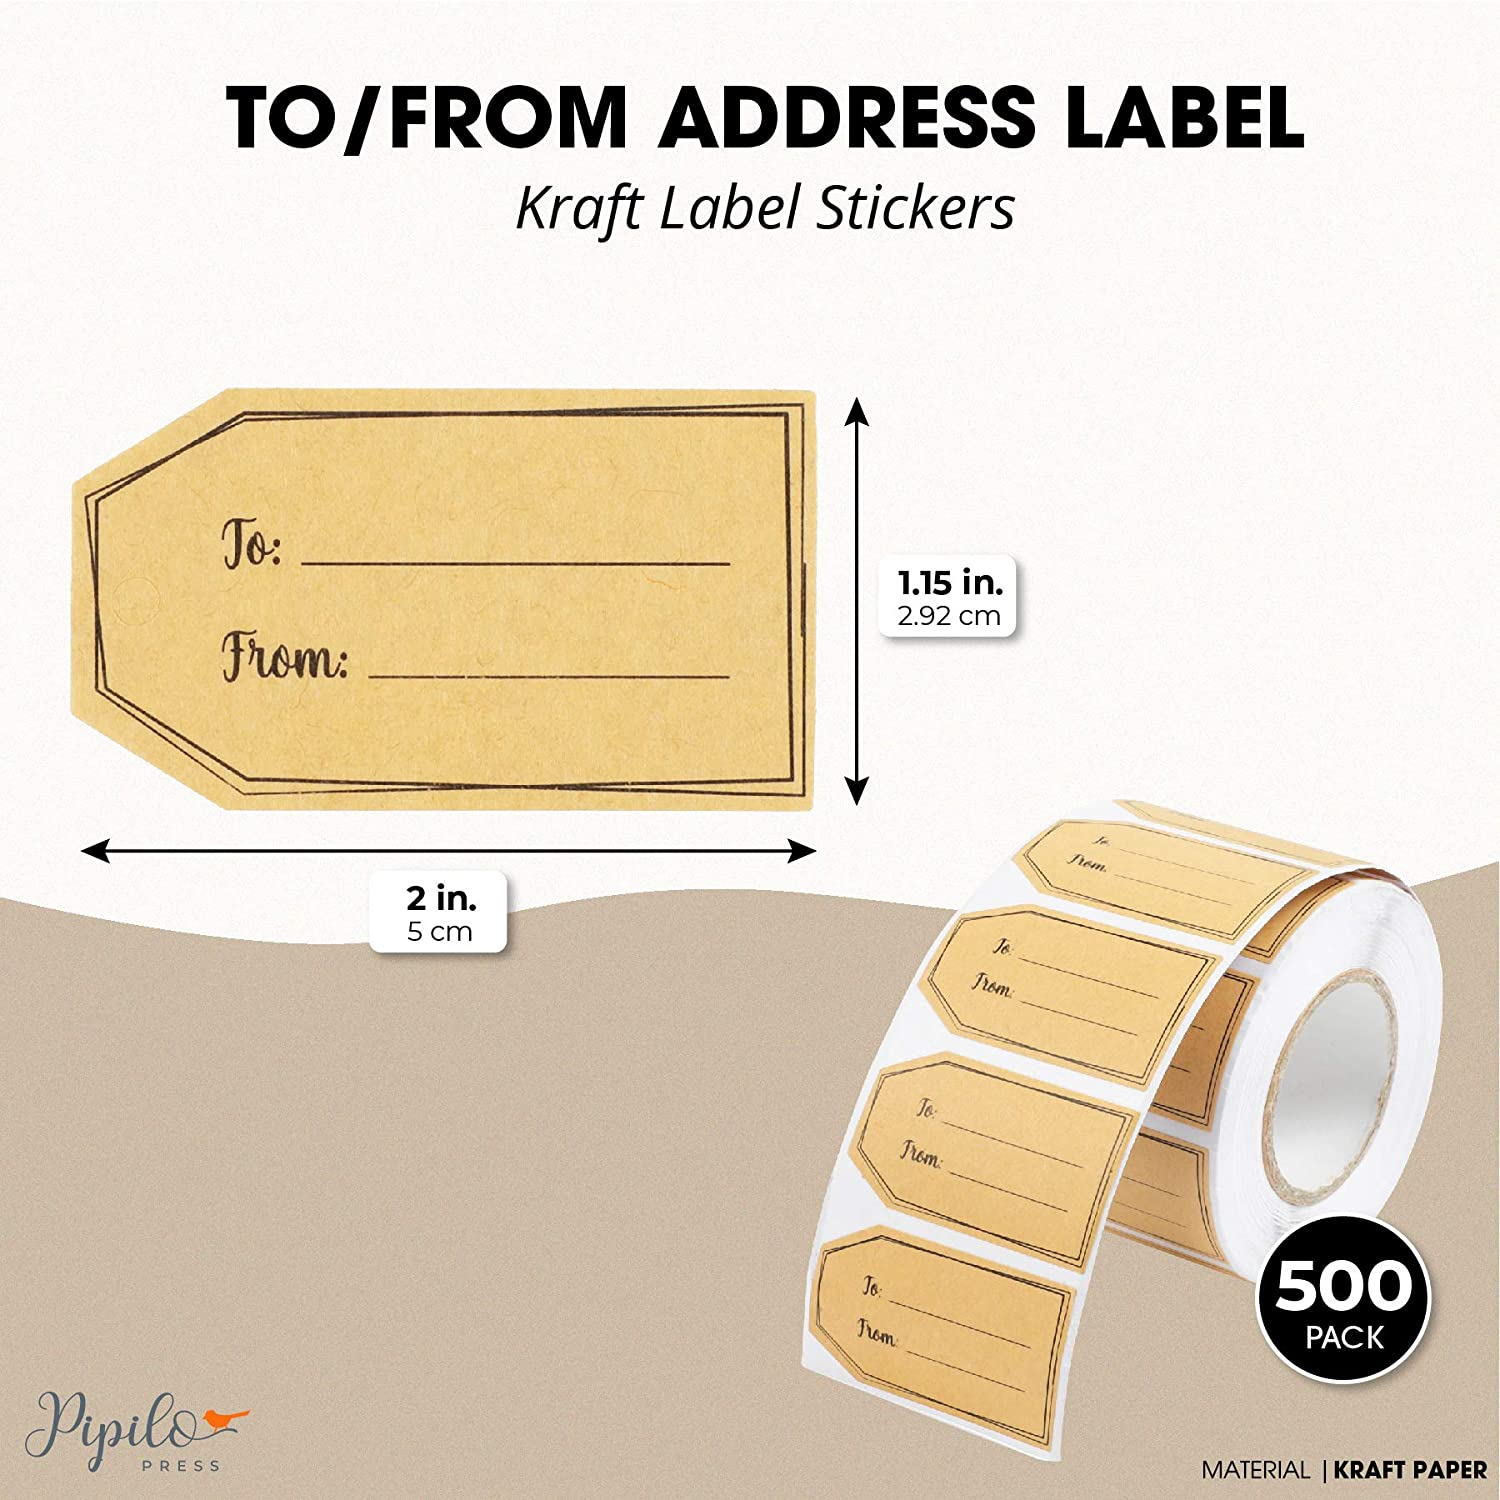 Gift Tag Stickers Roll for Christmas 2 x 1.15 in, 500 Pack Brown Kraft Labels